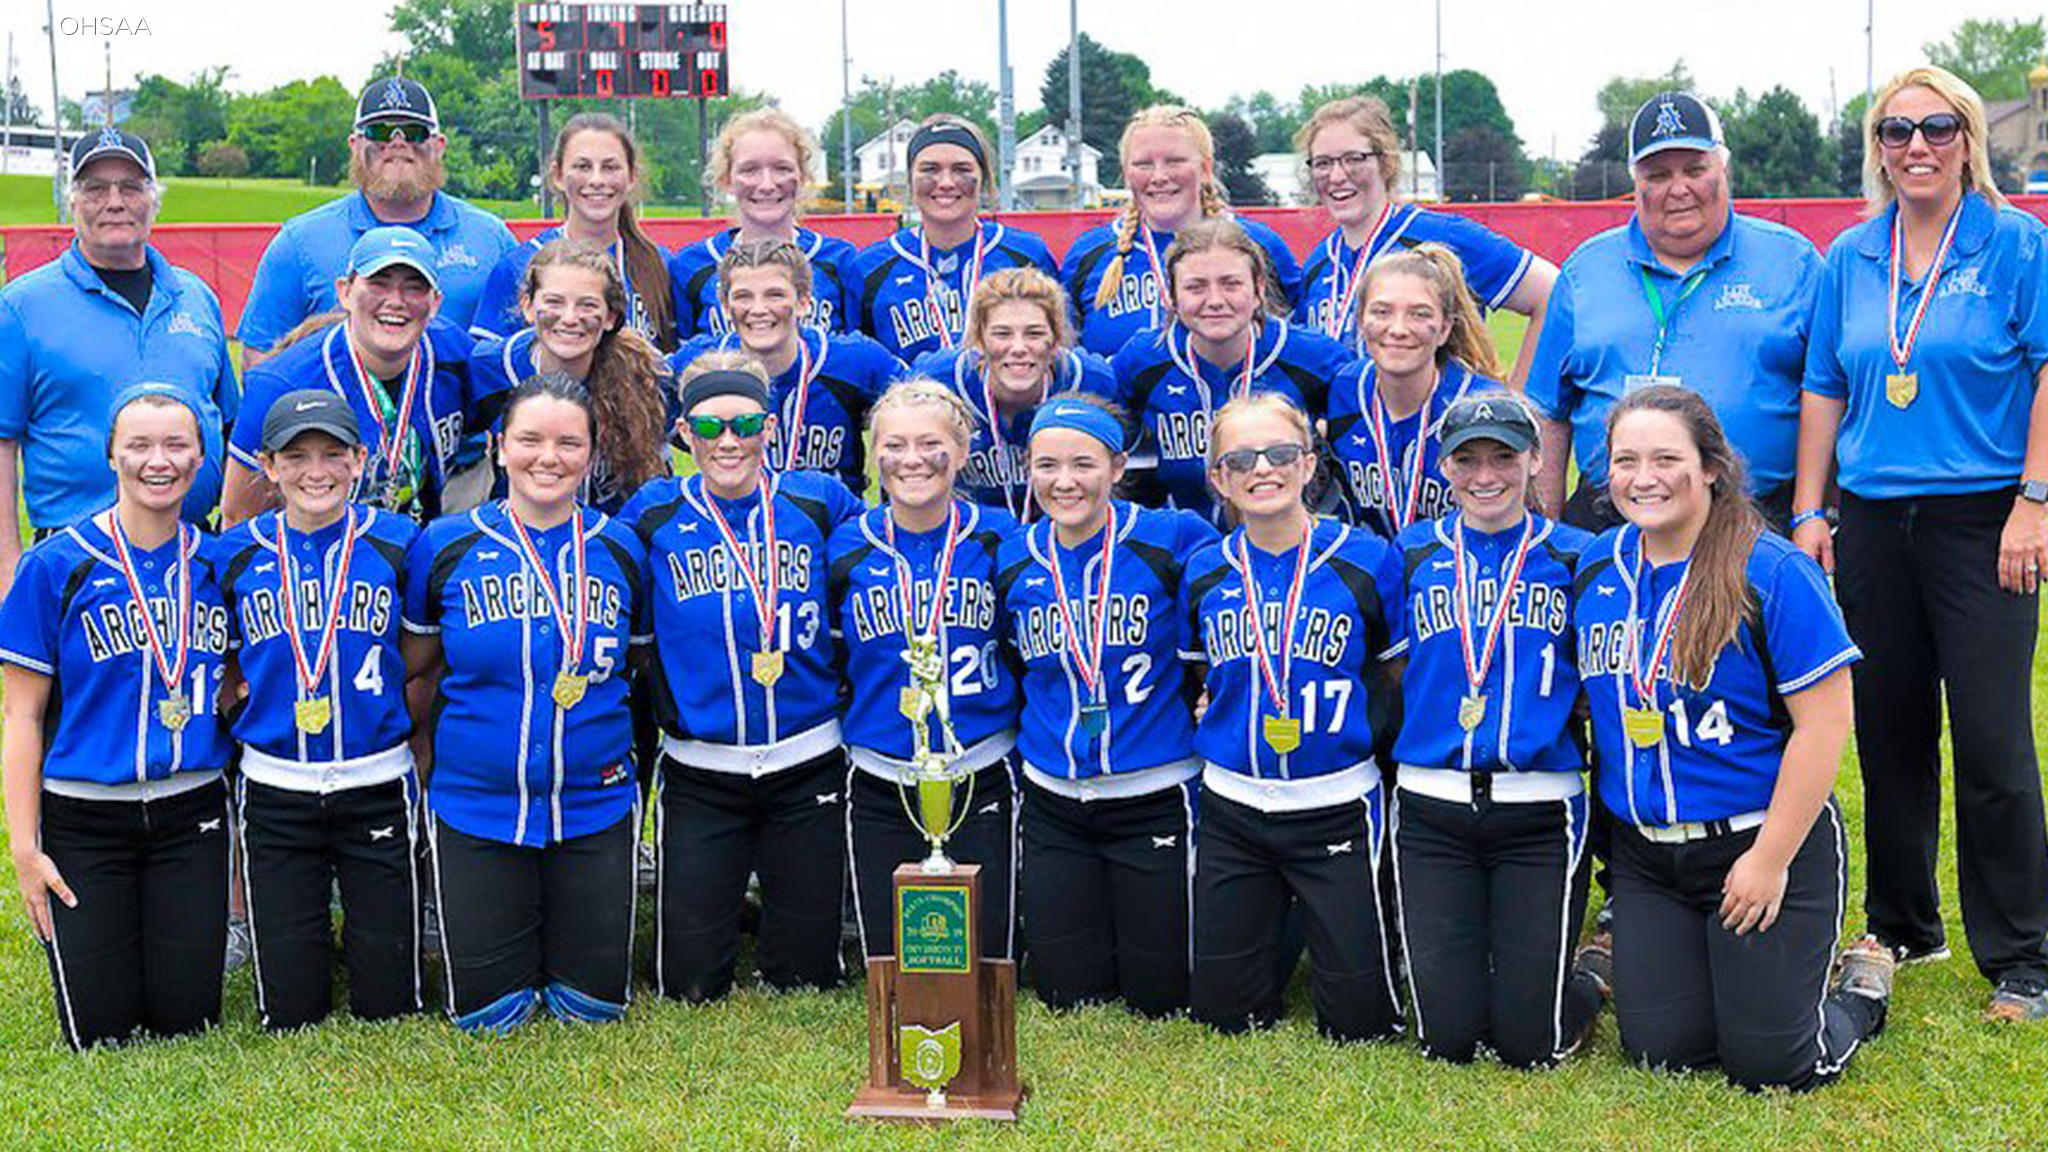 Antwerp softball state title becomes one of celebration for whole community